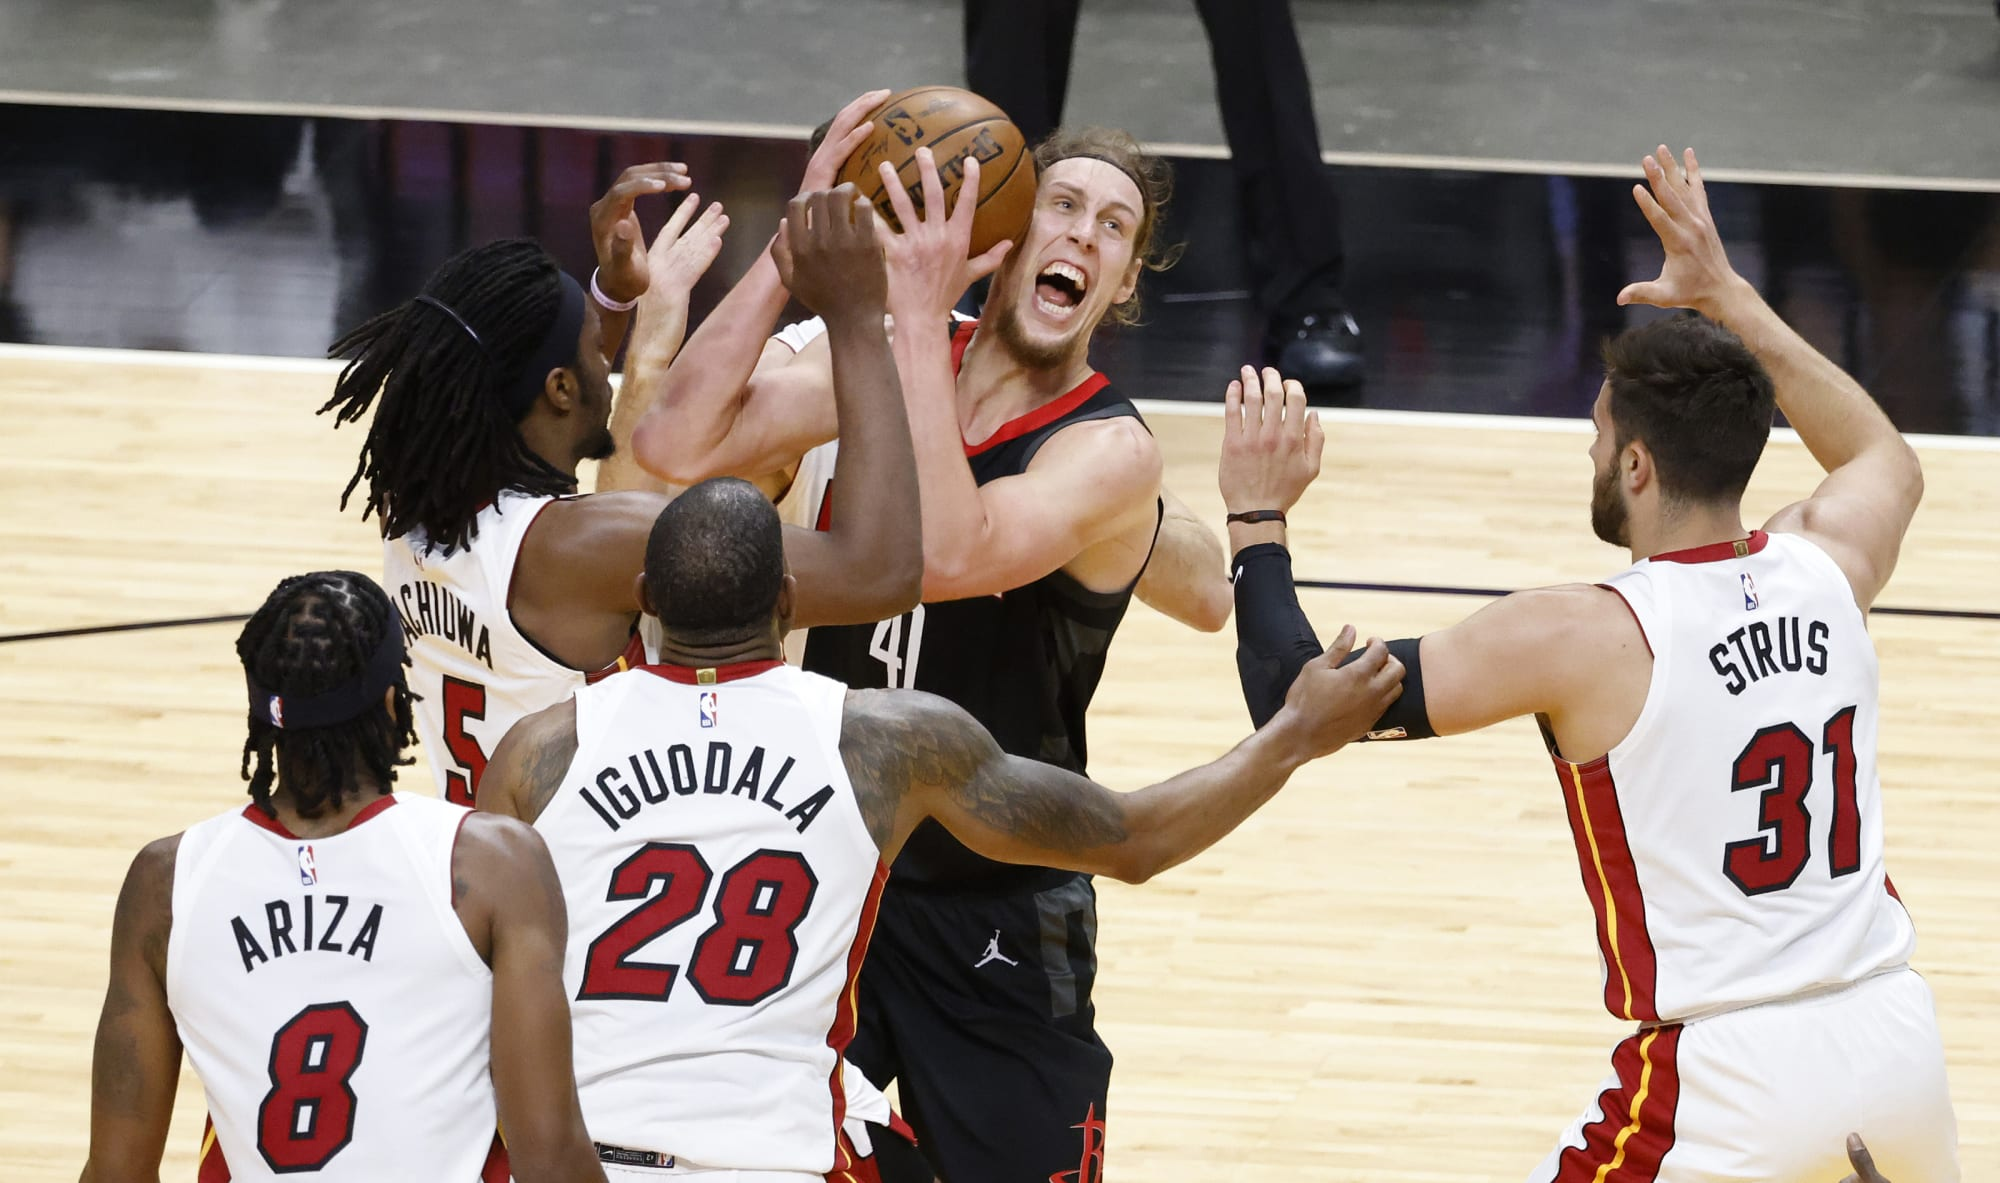 Miami Heat: Kelly Olynyk has to be discussed… did they move the wrong piece?